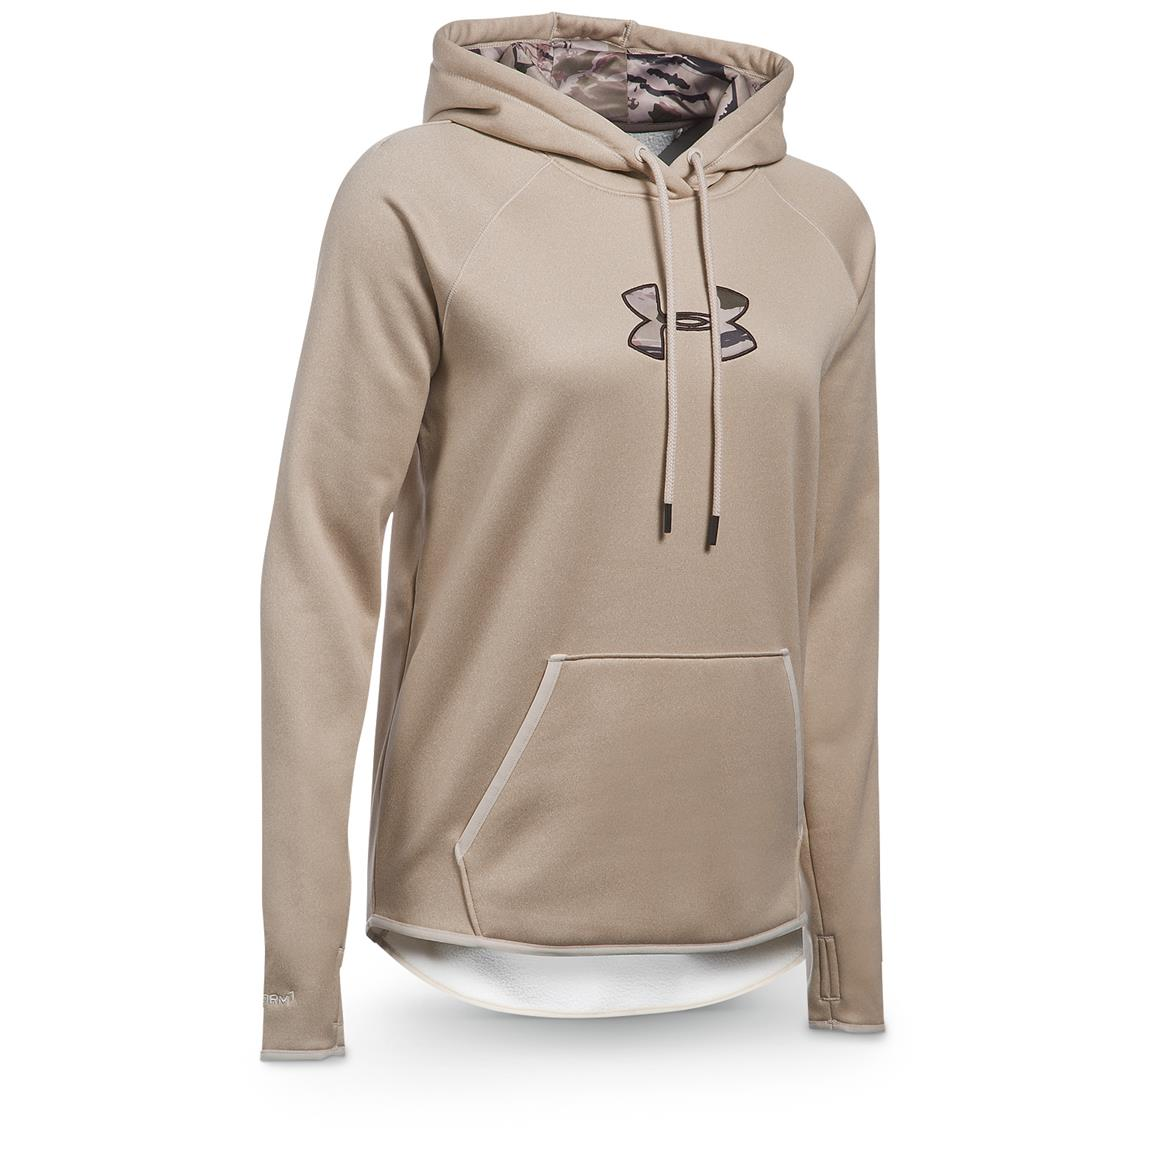 Under Armour Women's Icon Caliber Hoodie, Oatmeal